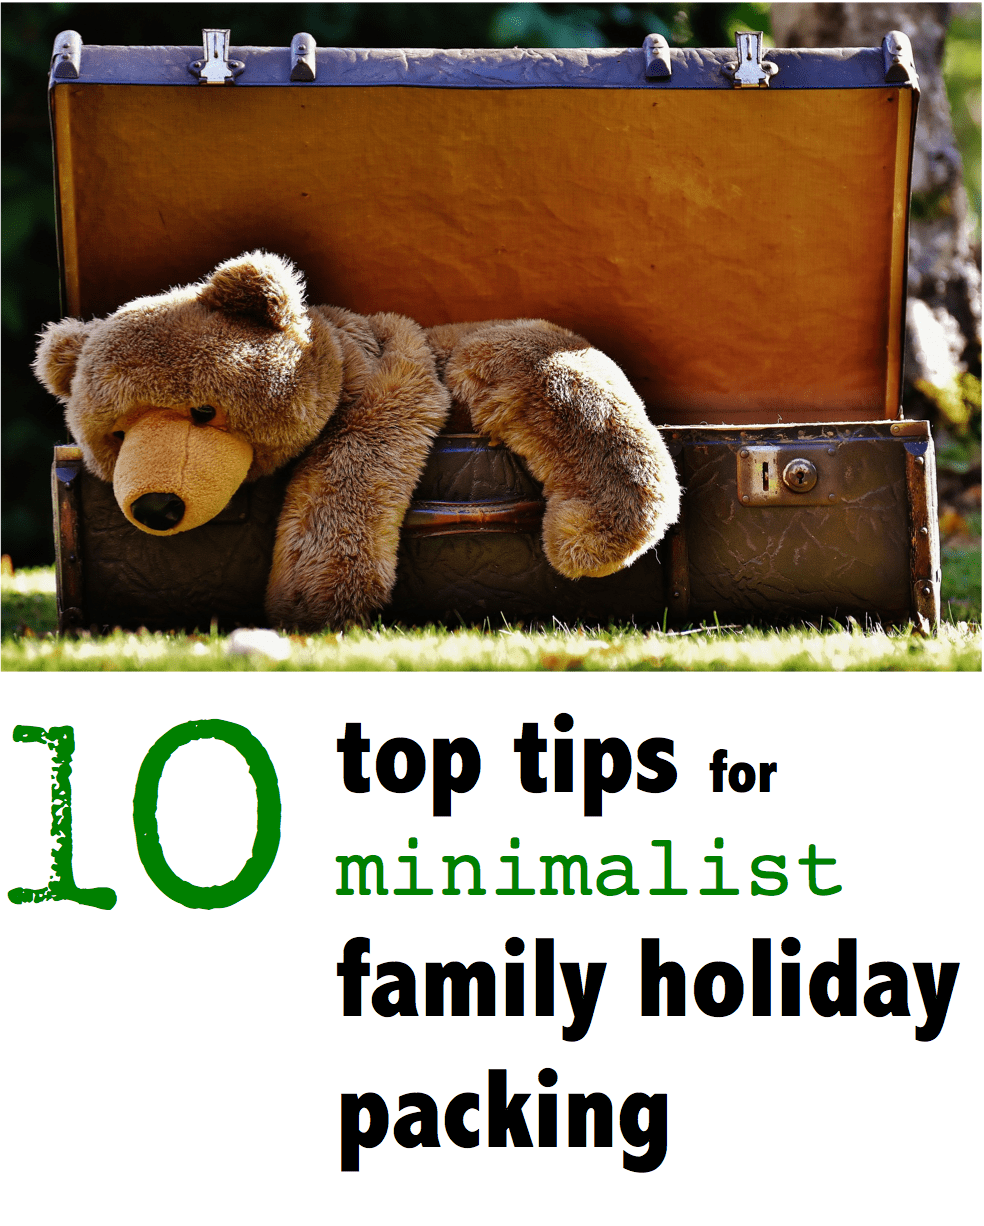 10 Top Tips for Minimalist Family Holiday Packing